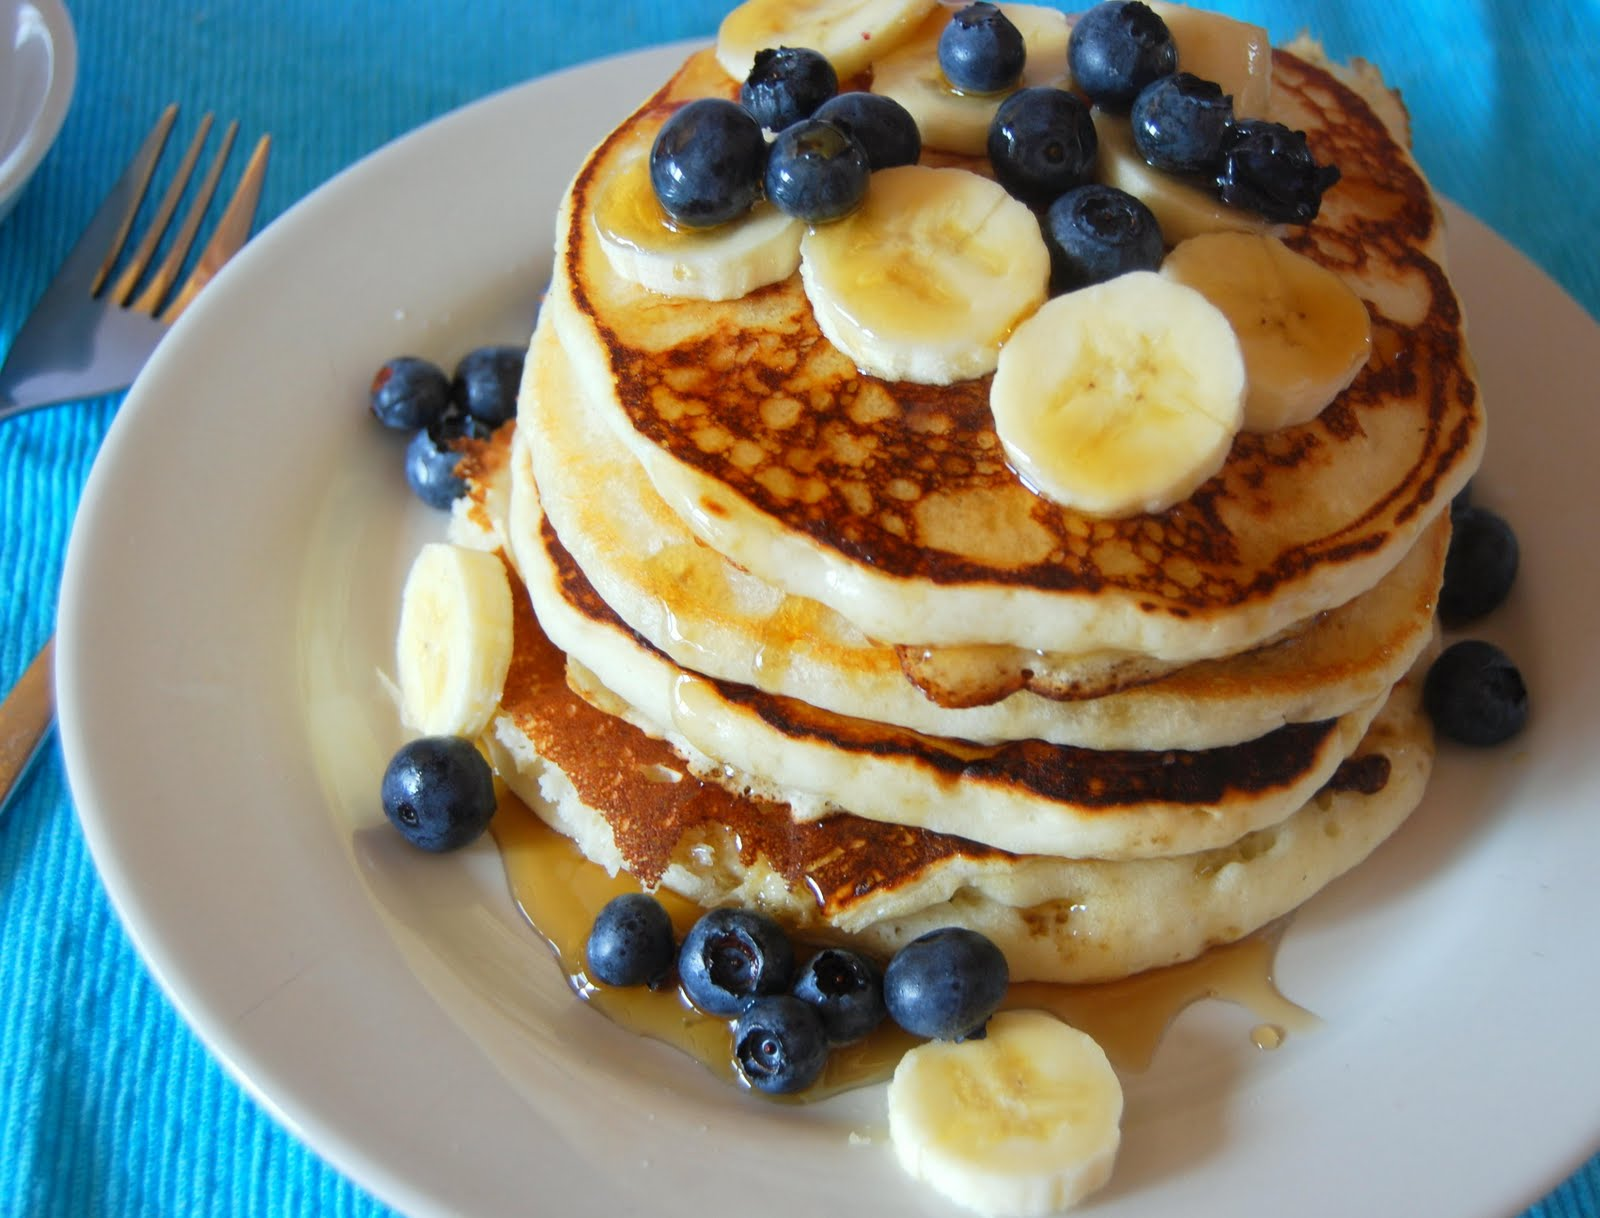 Kirsten's Kitchen: of vegan creations: Sunday Morning: vegan pancakes